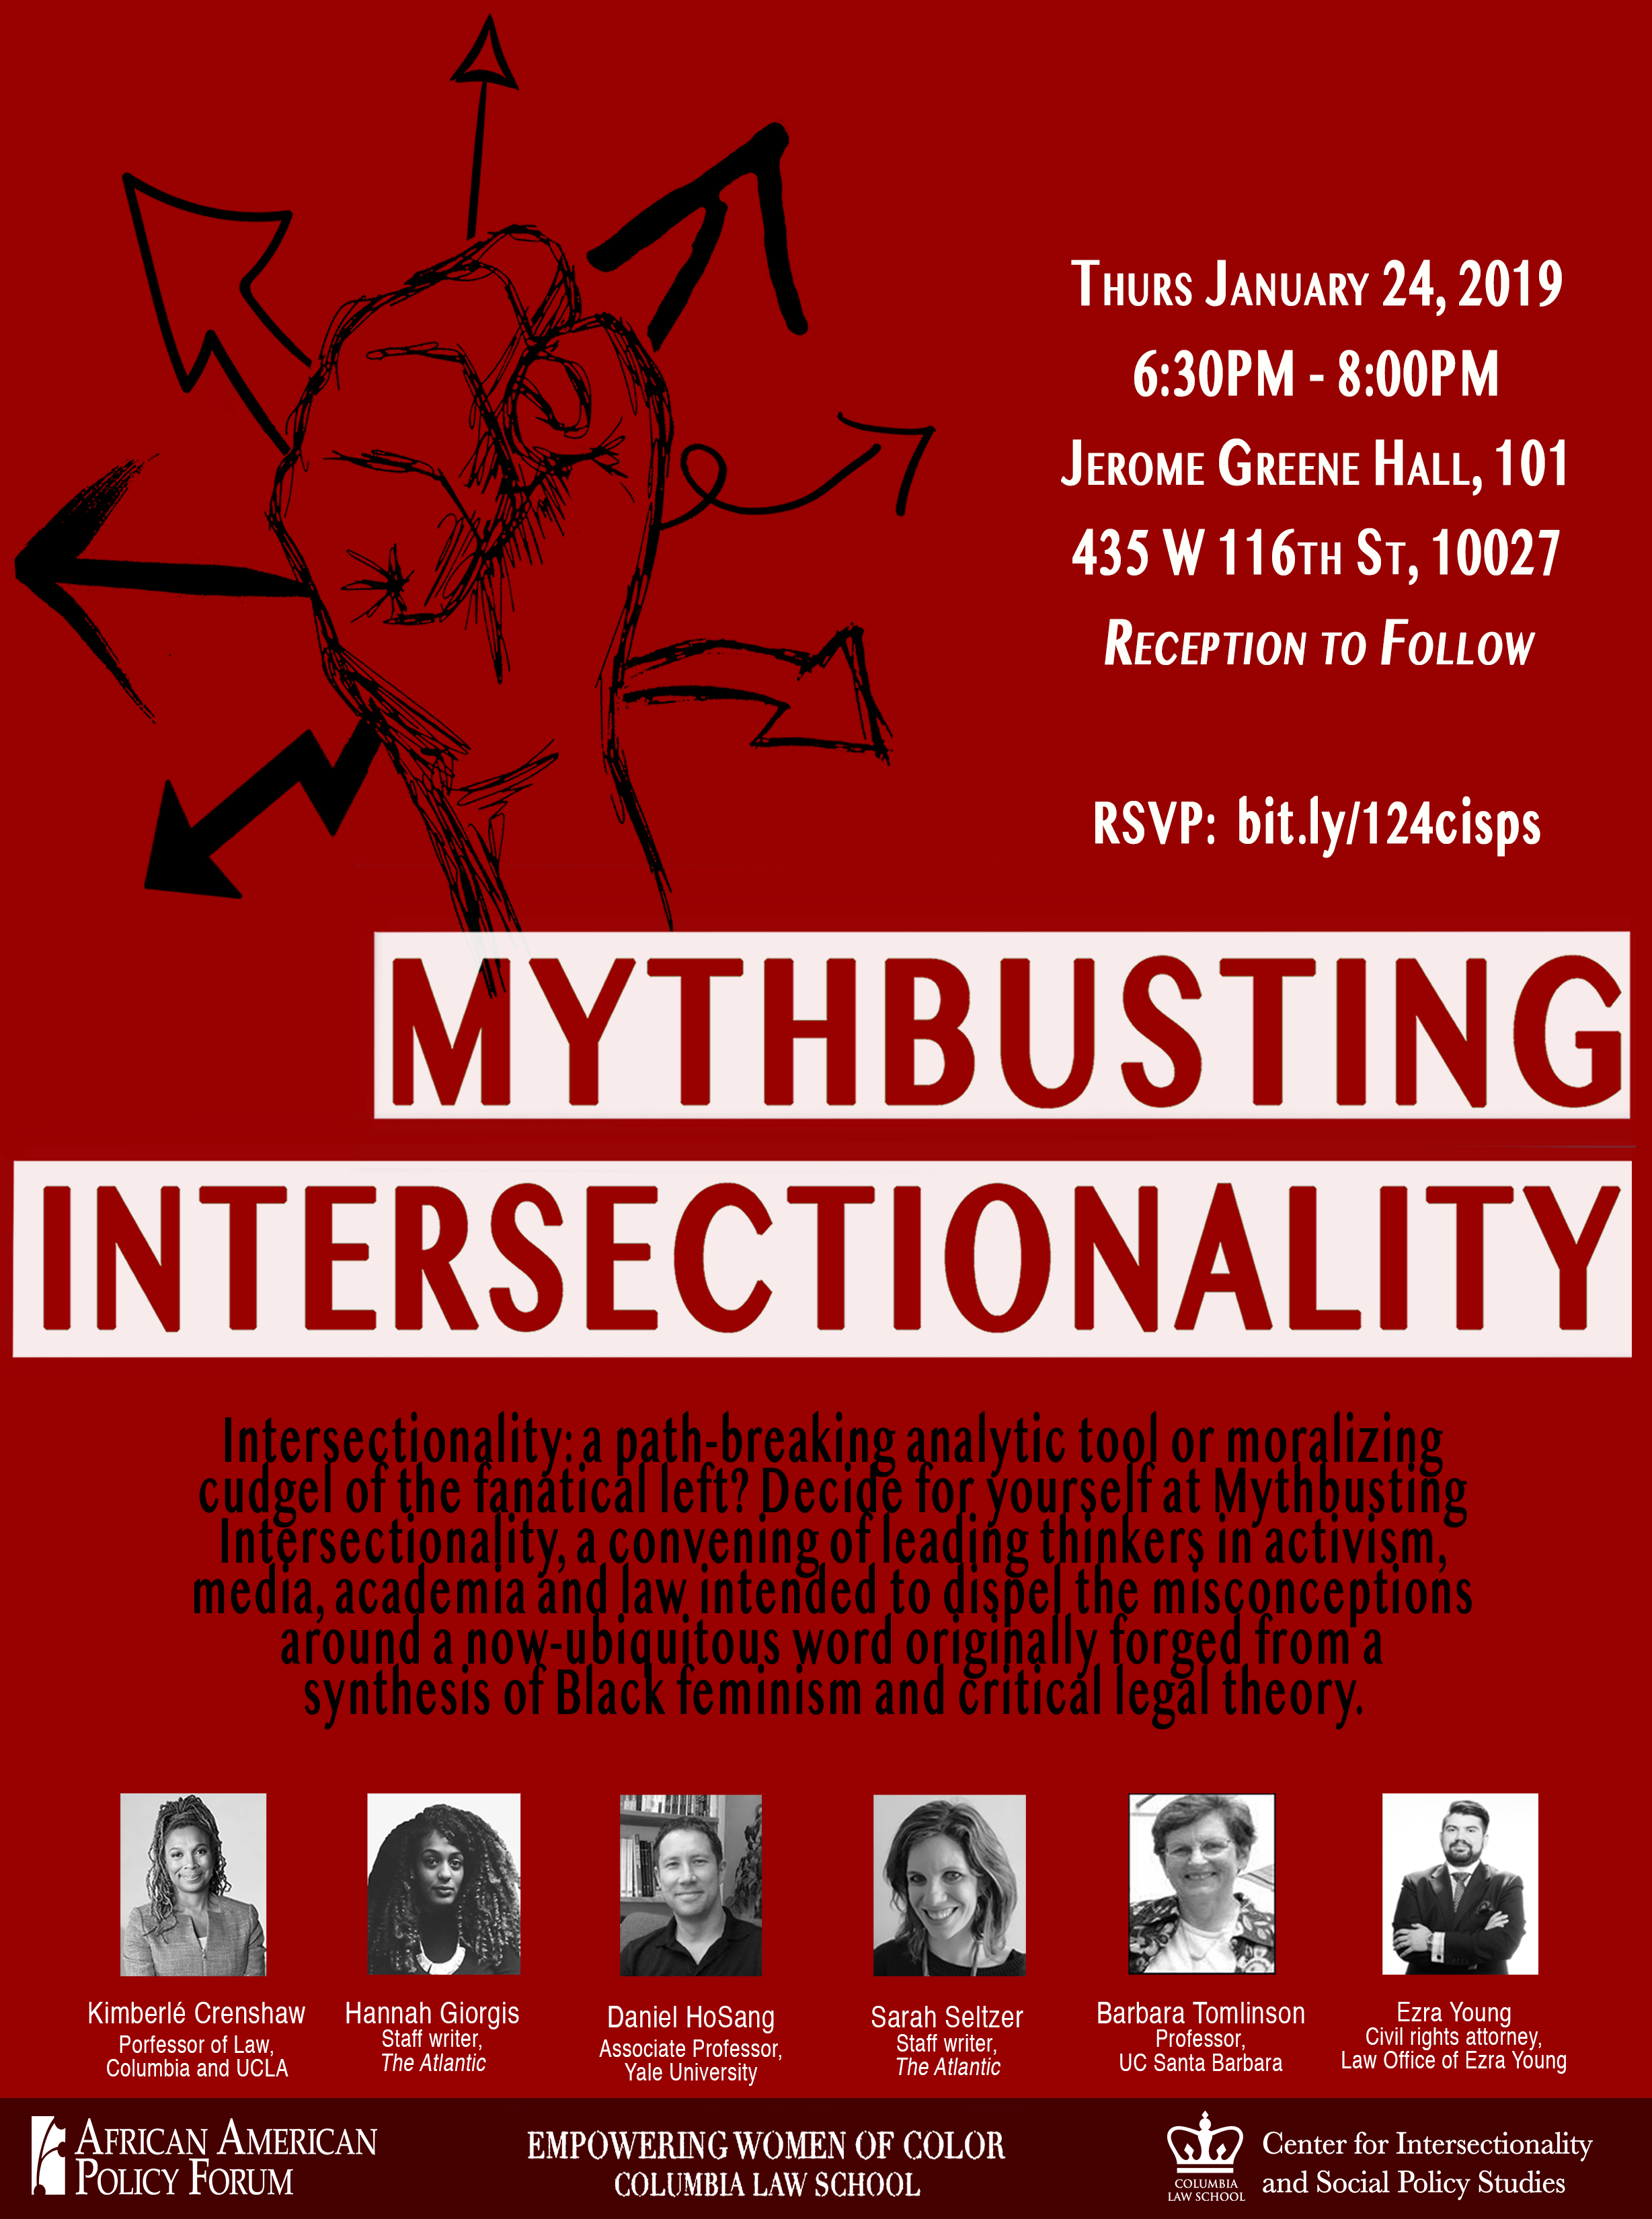 Mythbusting+Intersectionality+-+Poster.jpg